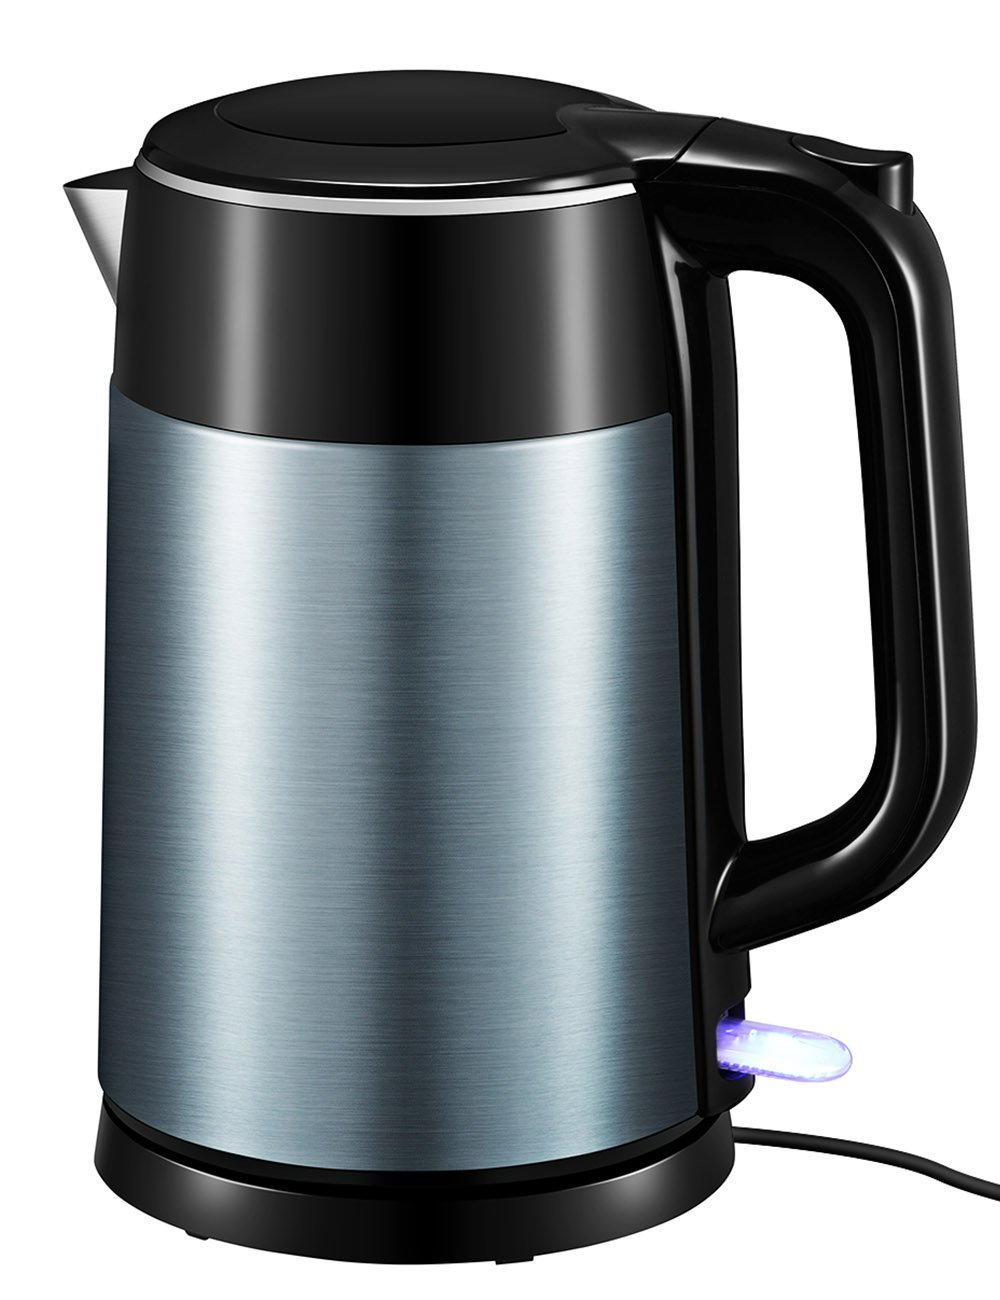 Electric Kettle, Habor UPGRADED 1.7Liter Stainless Steel Kettle, Double-Walled Hot Water Boiler Fast Heating with Auto Shut-Off and Boil-Dry Protection, Cordless, Sapphire Blue